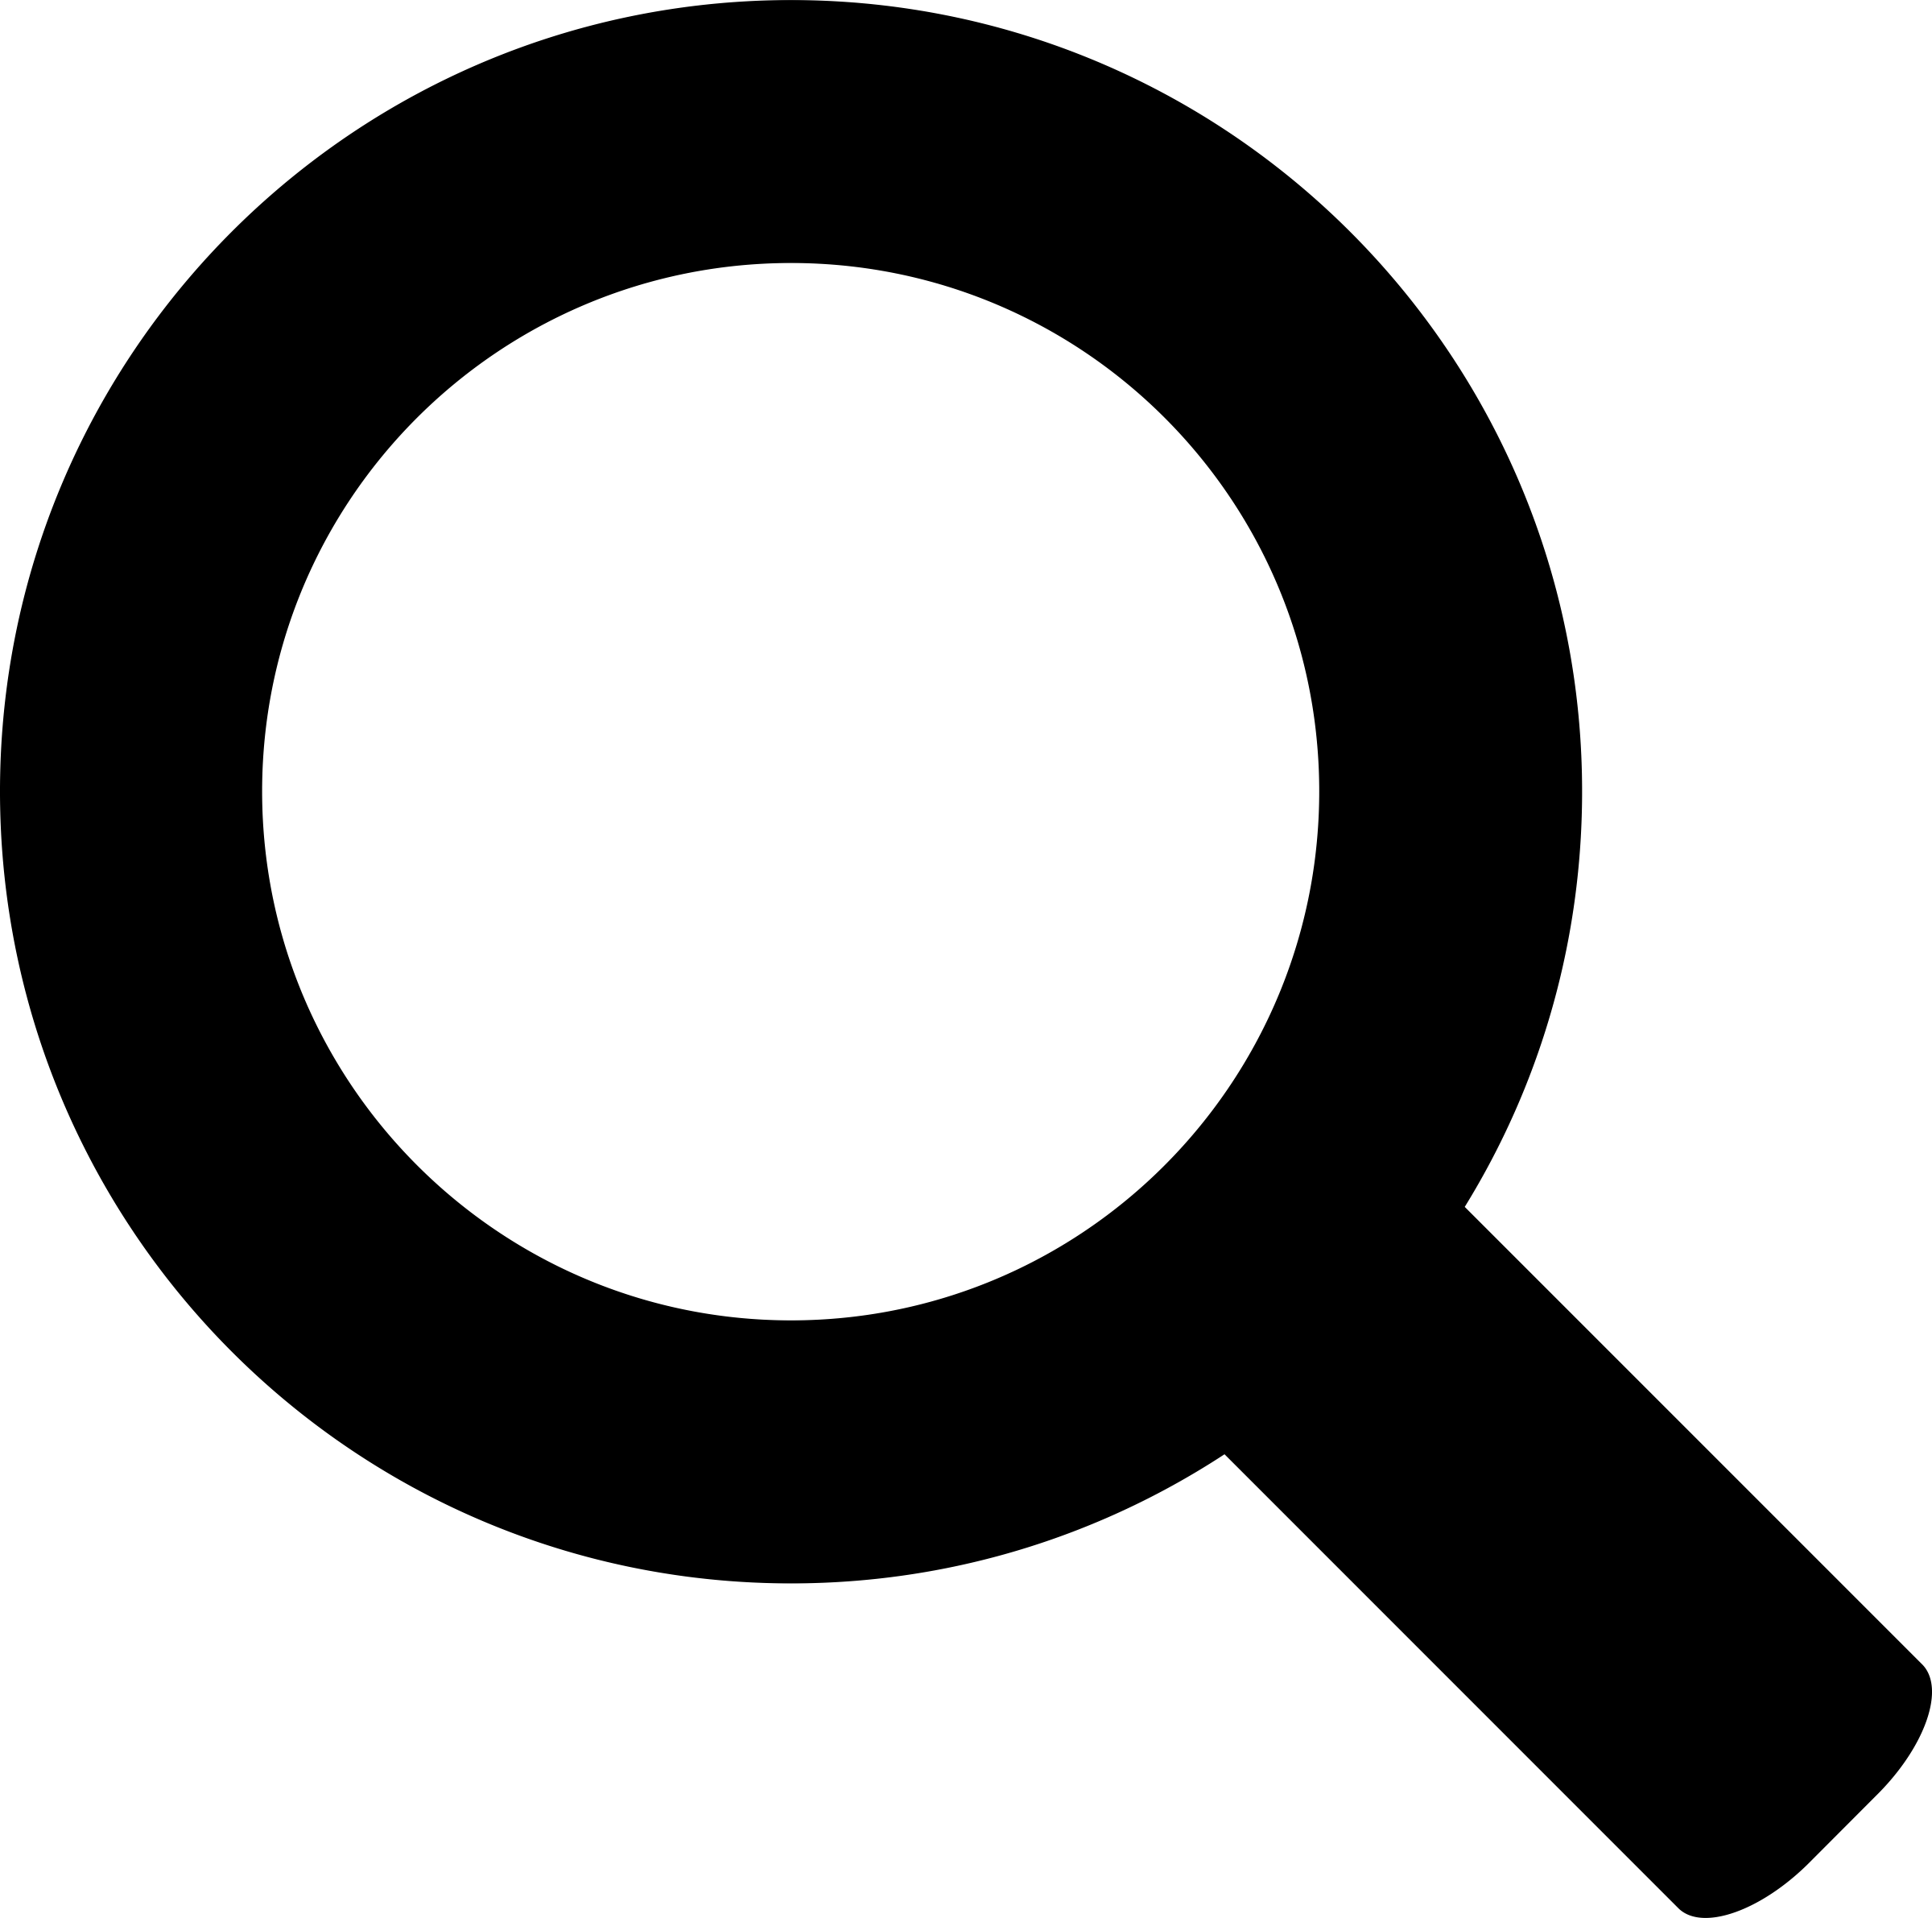 Search İcon Png - Search Icon Png Transparent #95297 - Free Icons Library